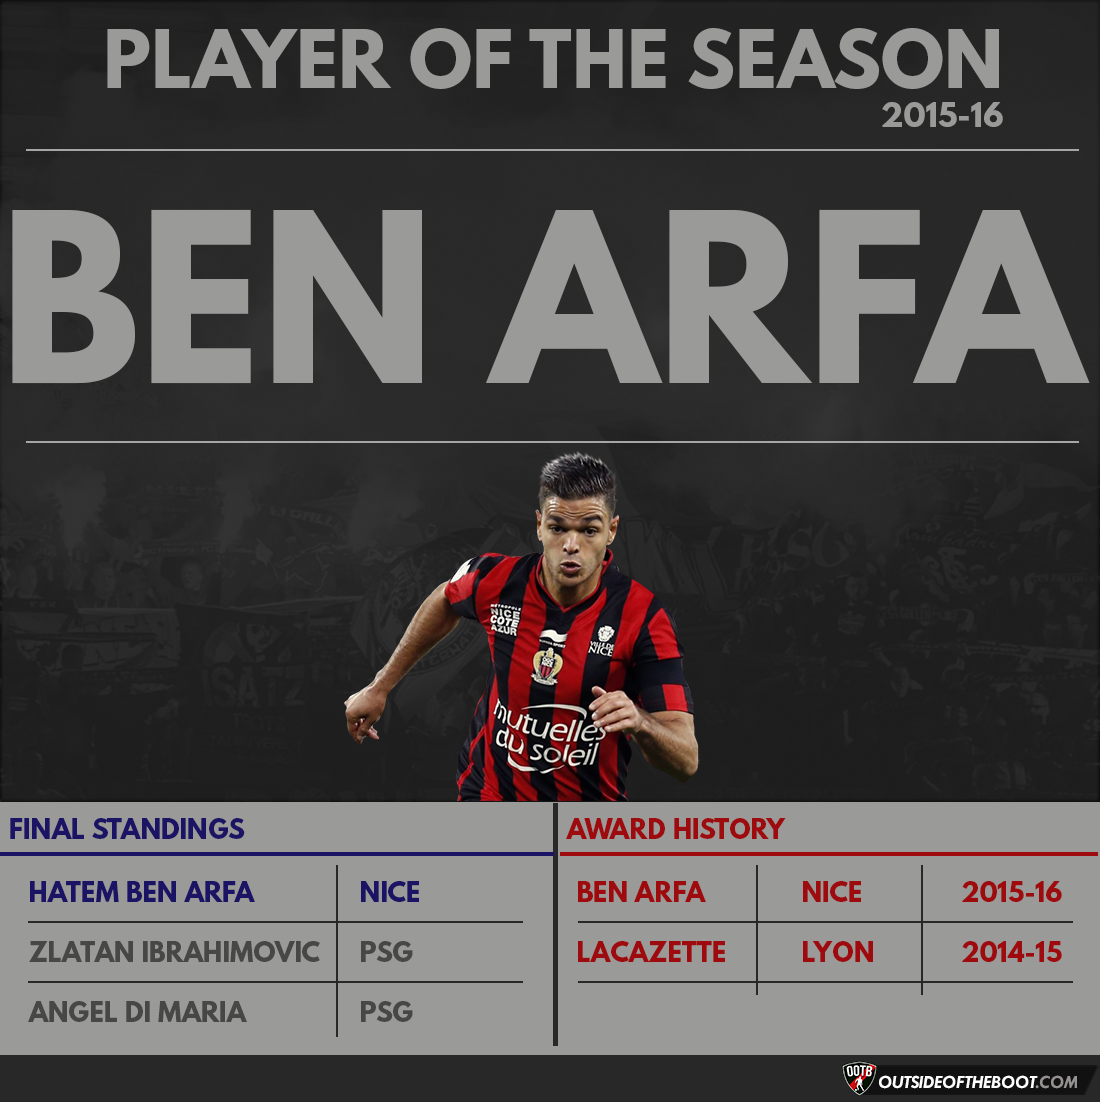 Ligue 1 Player of the Season 2015-16